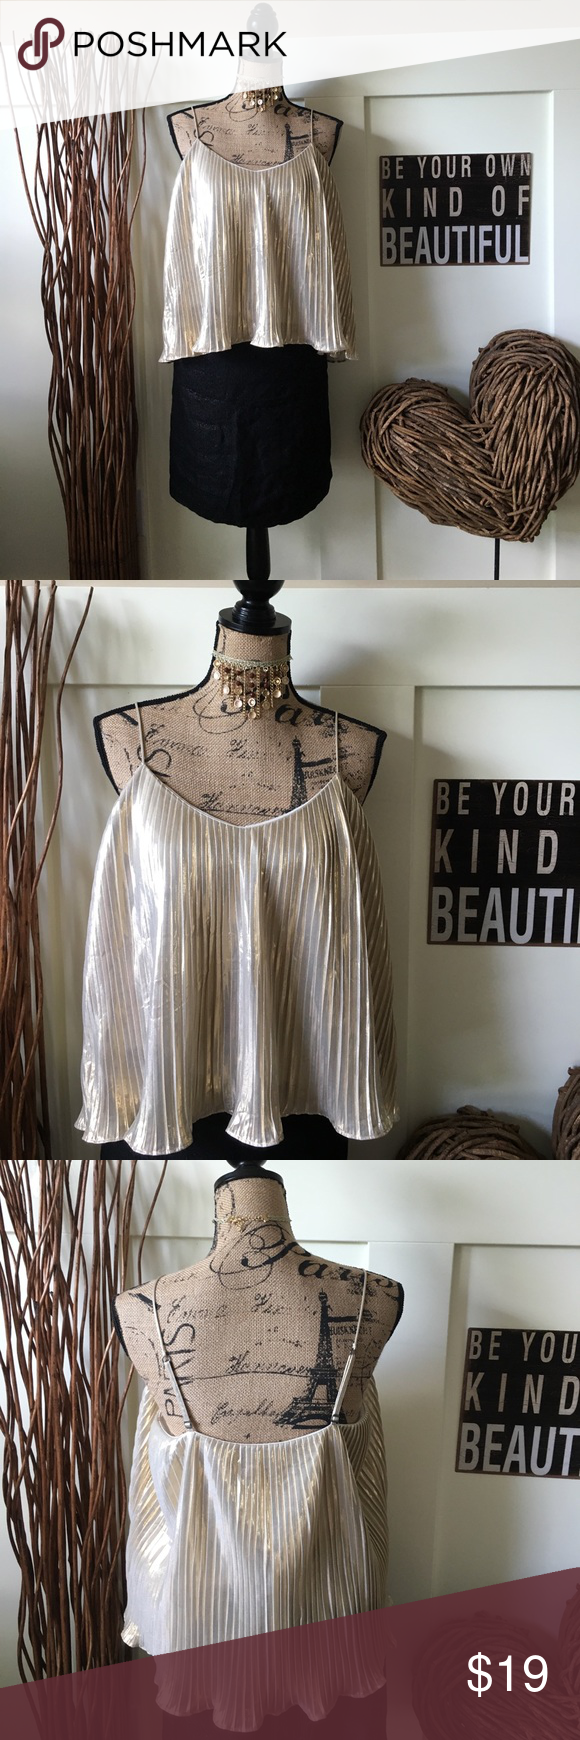 Abercrombie & Fitch gold metallic crop top Pleated  metallic crop top has adjustable straps lined and is lined with a layer of cream fabric. Looks so pretty dressed up with your favorite skirt or dressed down with shorts and flip flops. Abercrombie & Fitch Tops Crop Tops